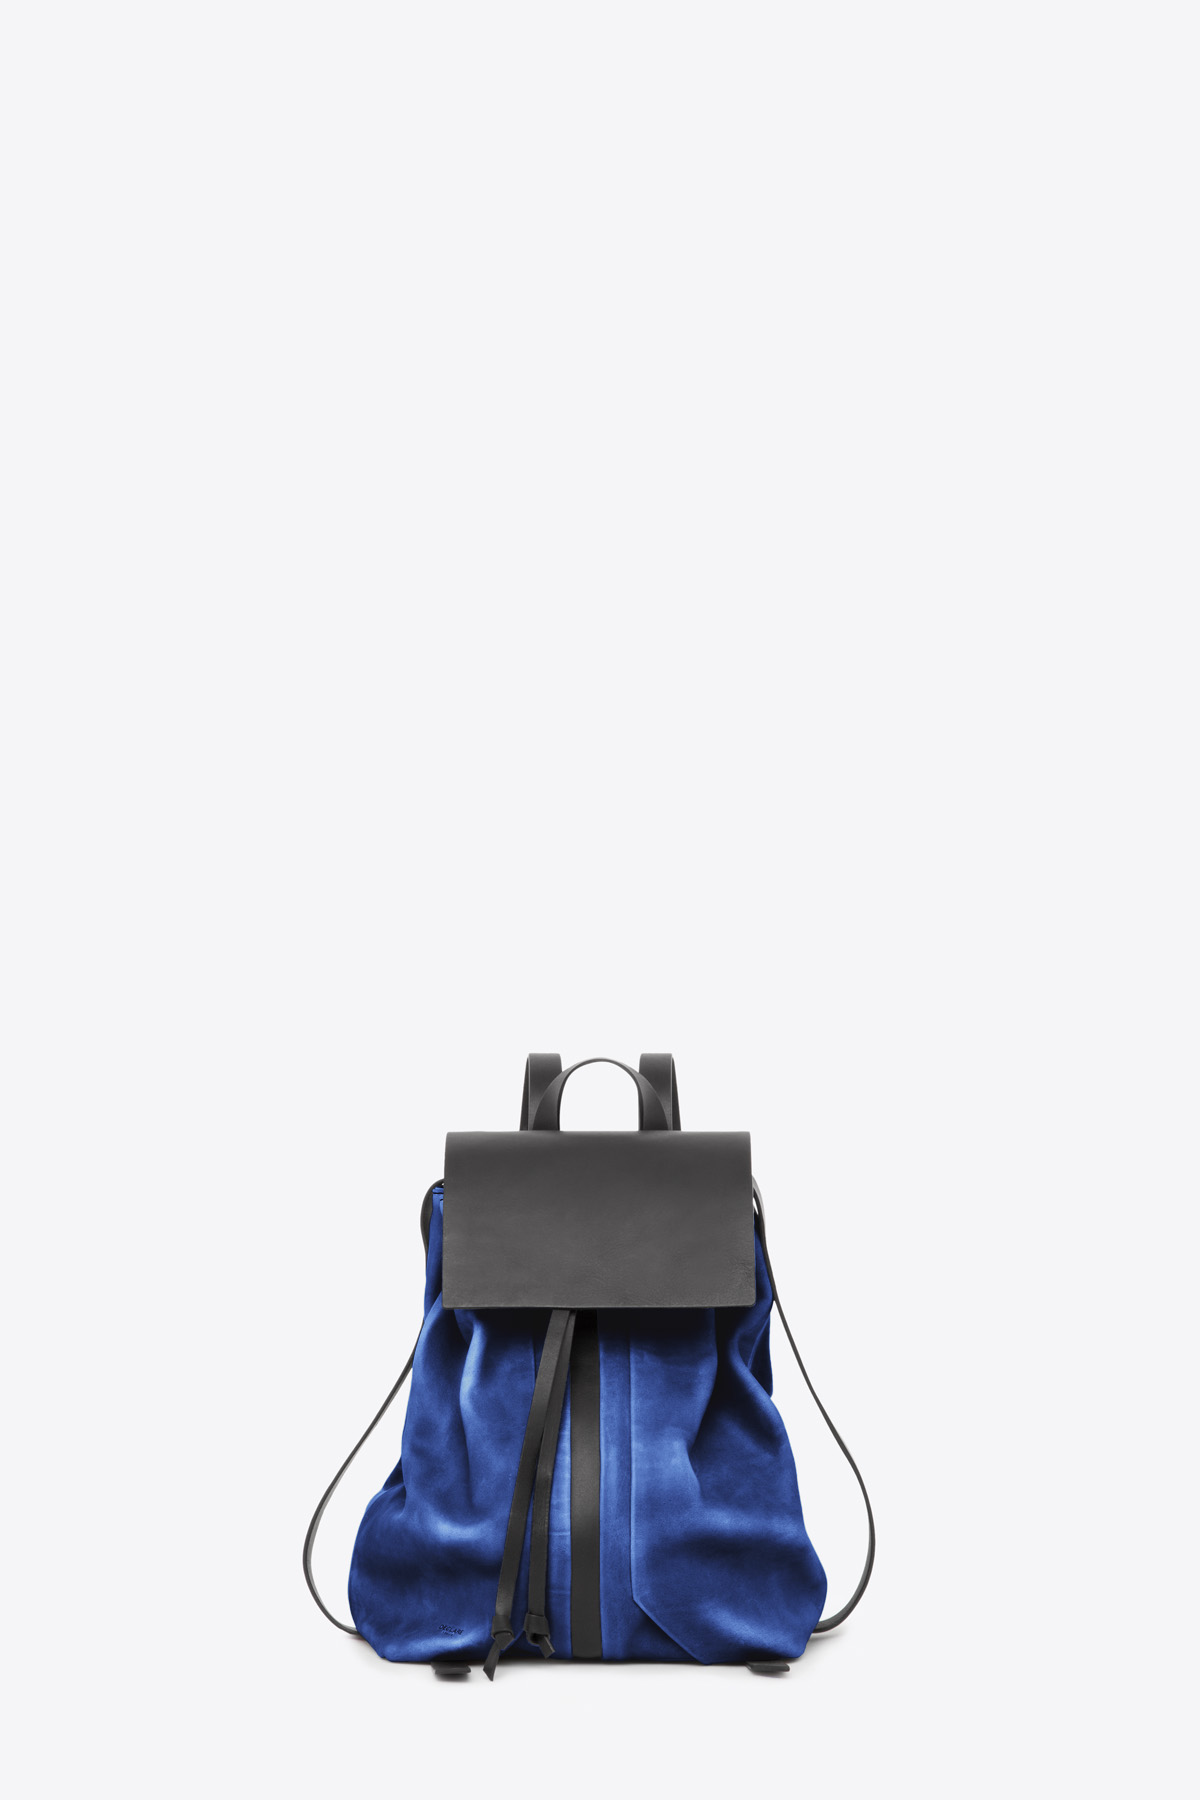 dclr009-b-backpack-a20-royalblue-front